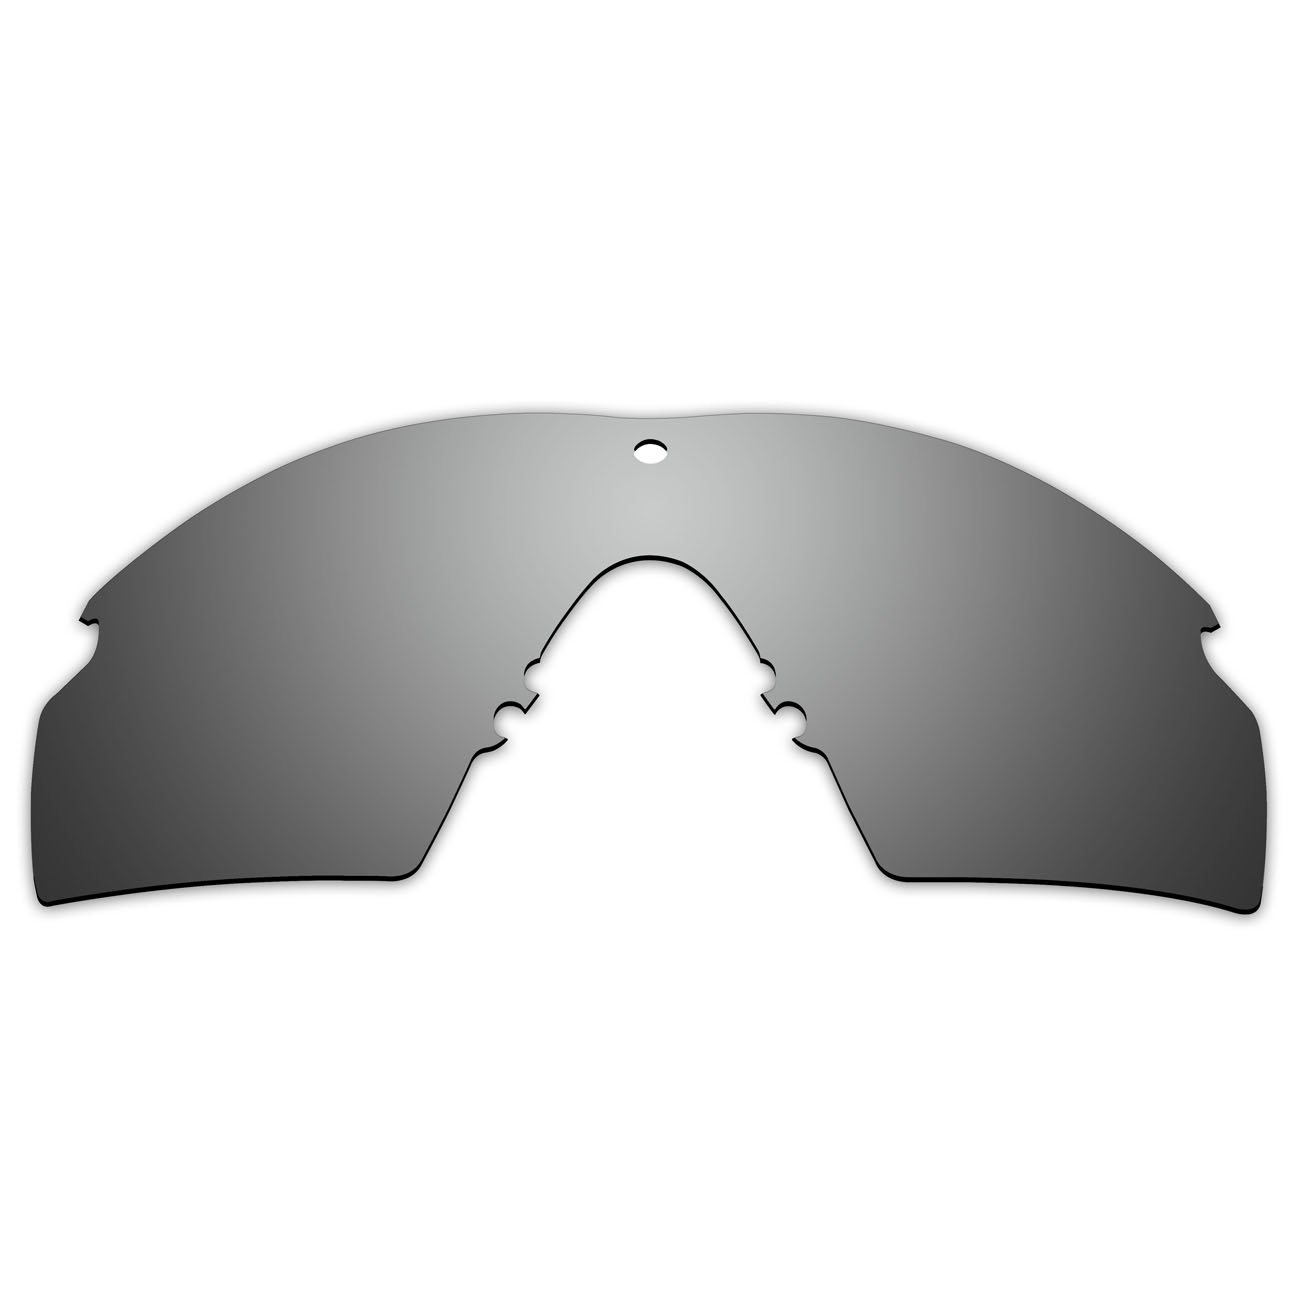 Amazon.com : ACOMPATIBLE Replacement Lenses for Oakley Industrial M ...